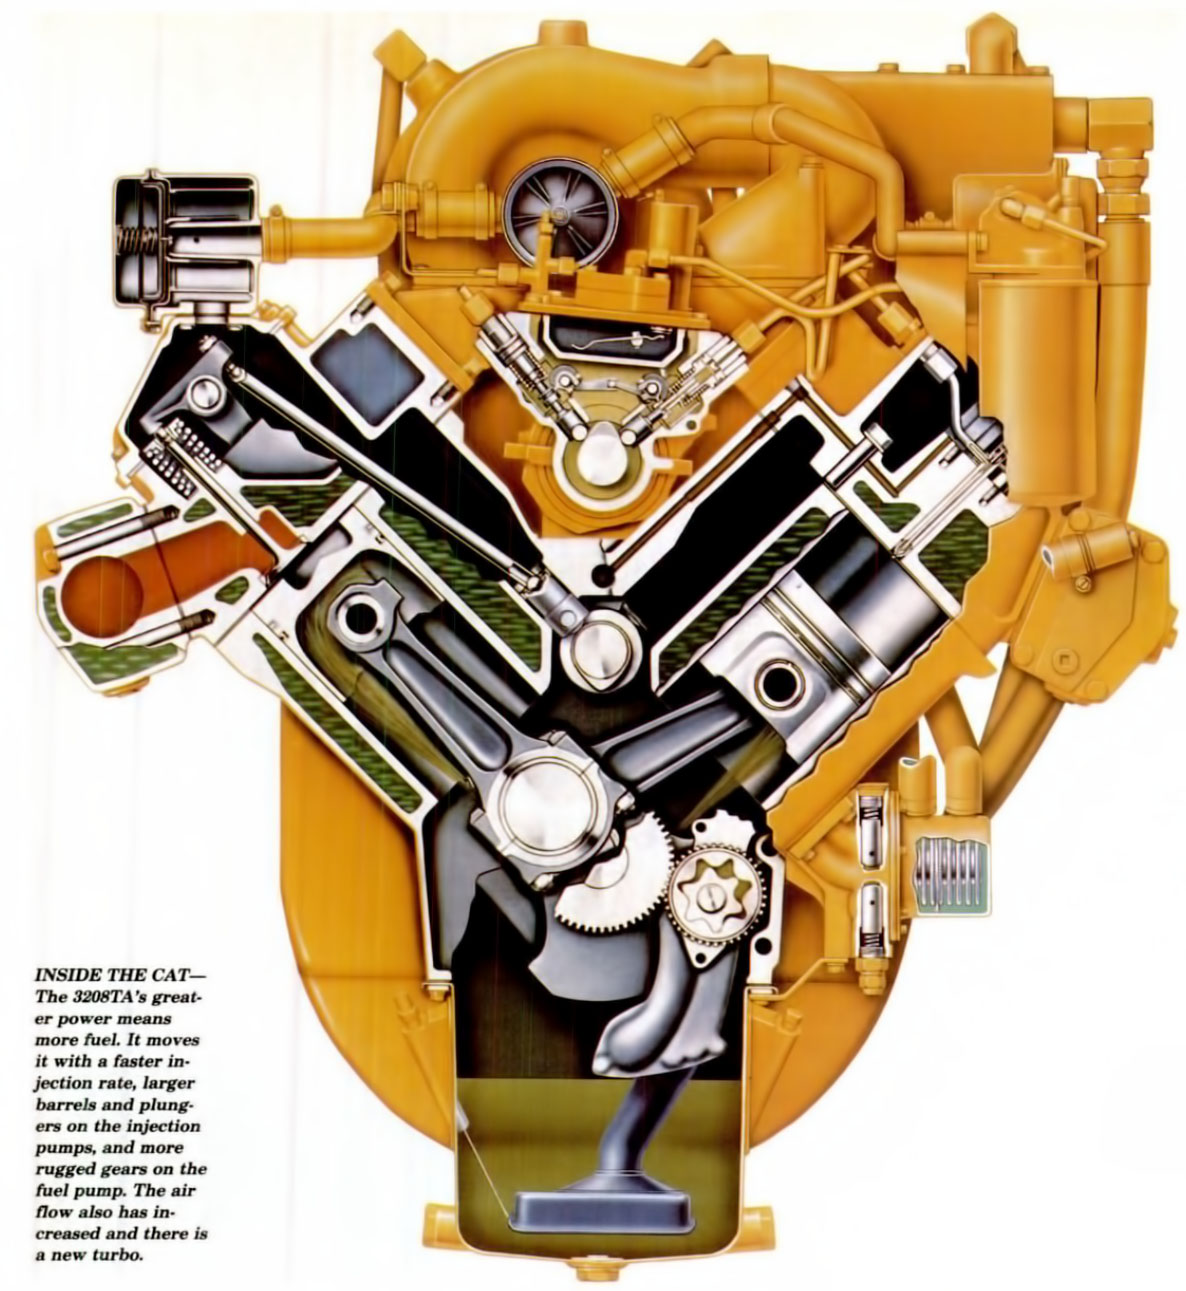 Caterpillar 3208TA Engine